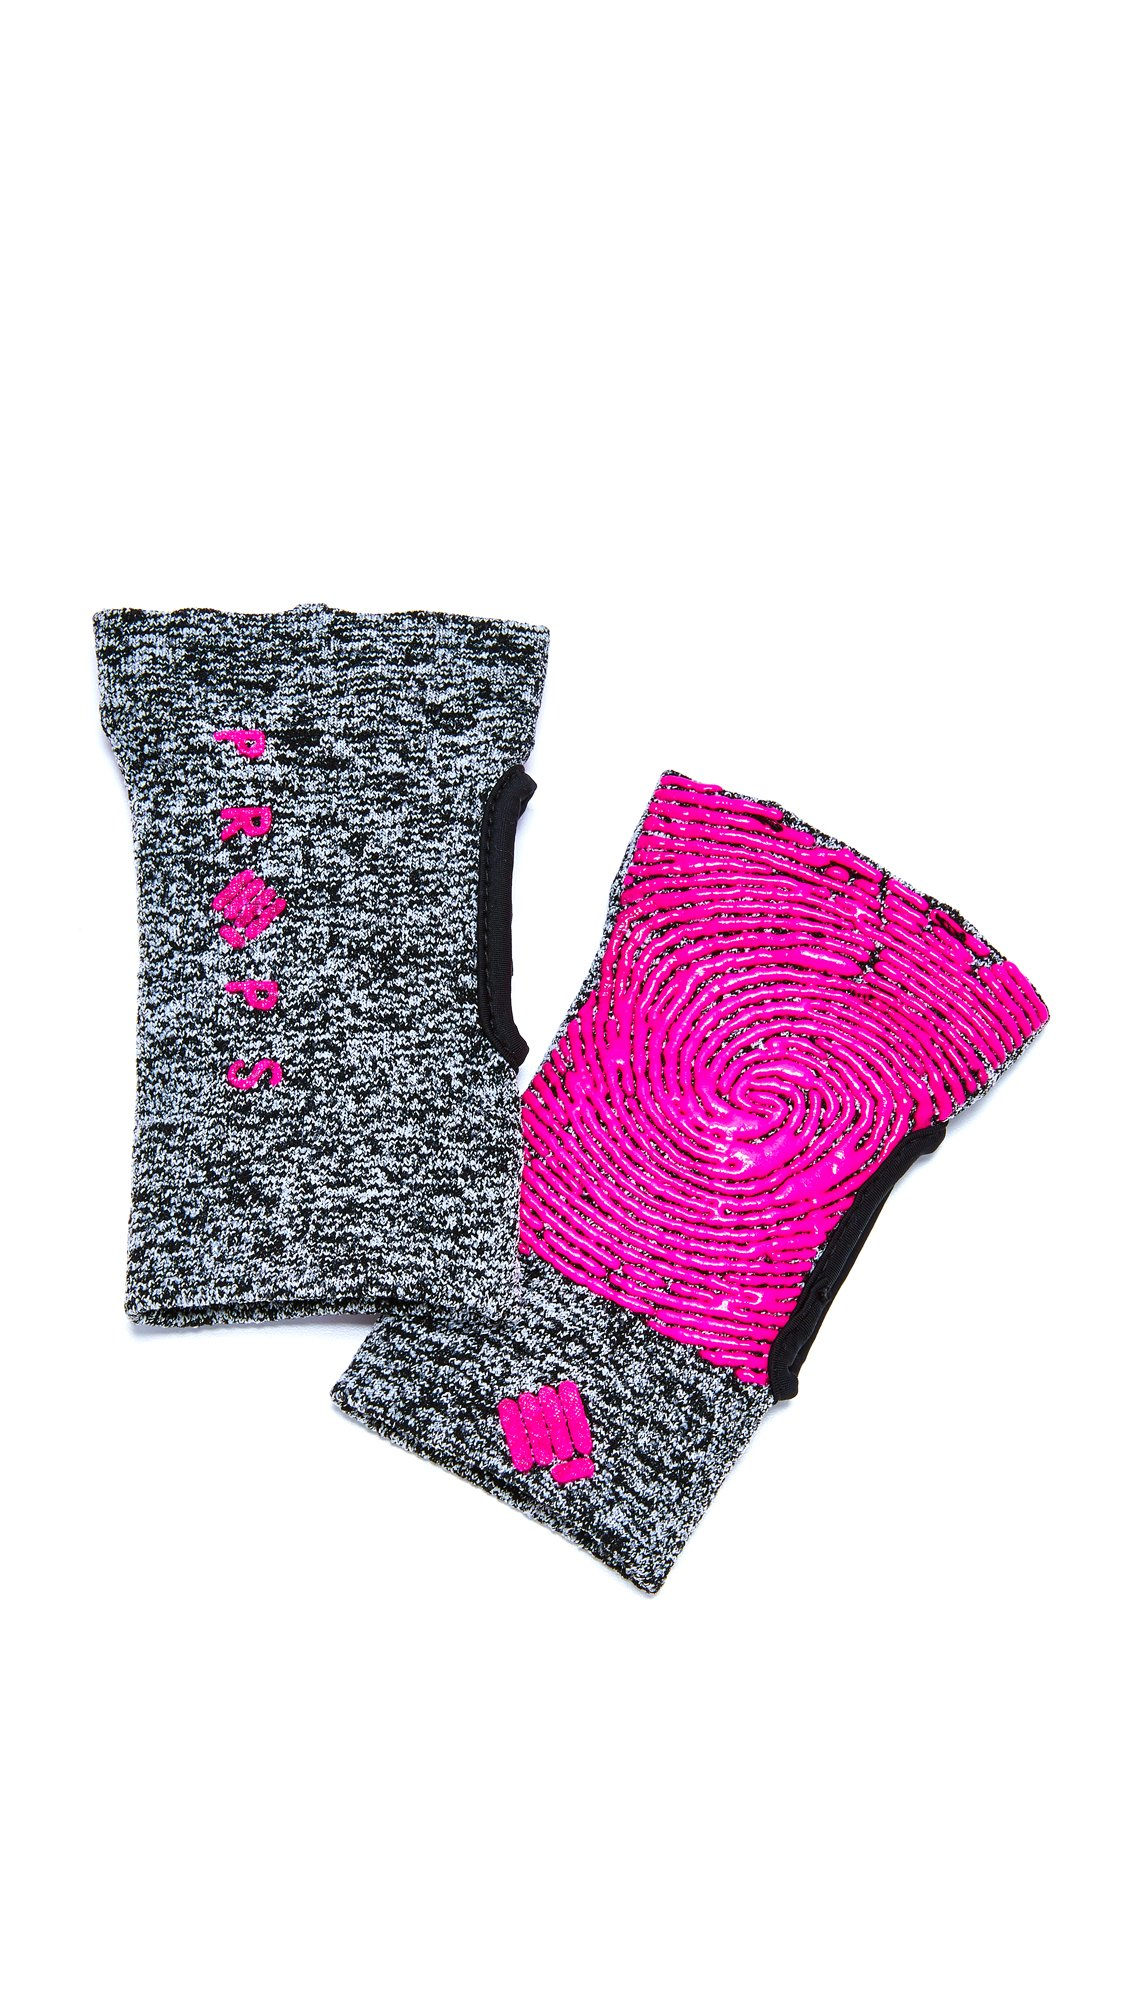 Props Athletics Women's Freedom Athletic Compression Gloves, Grey/Pink, Small by Props Athletics